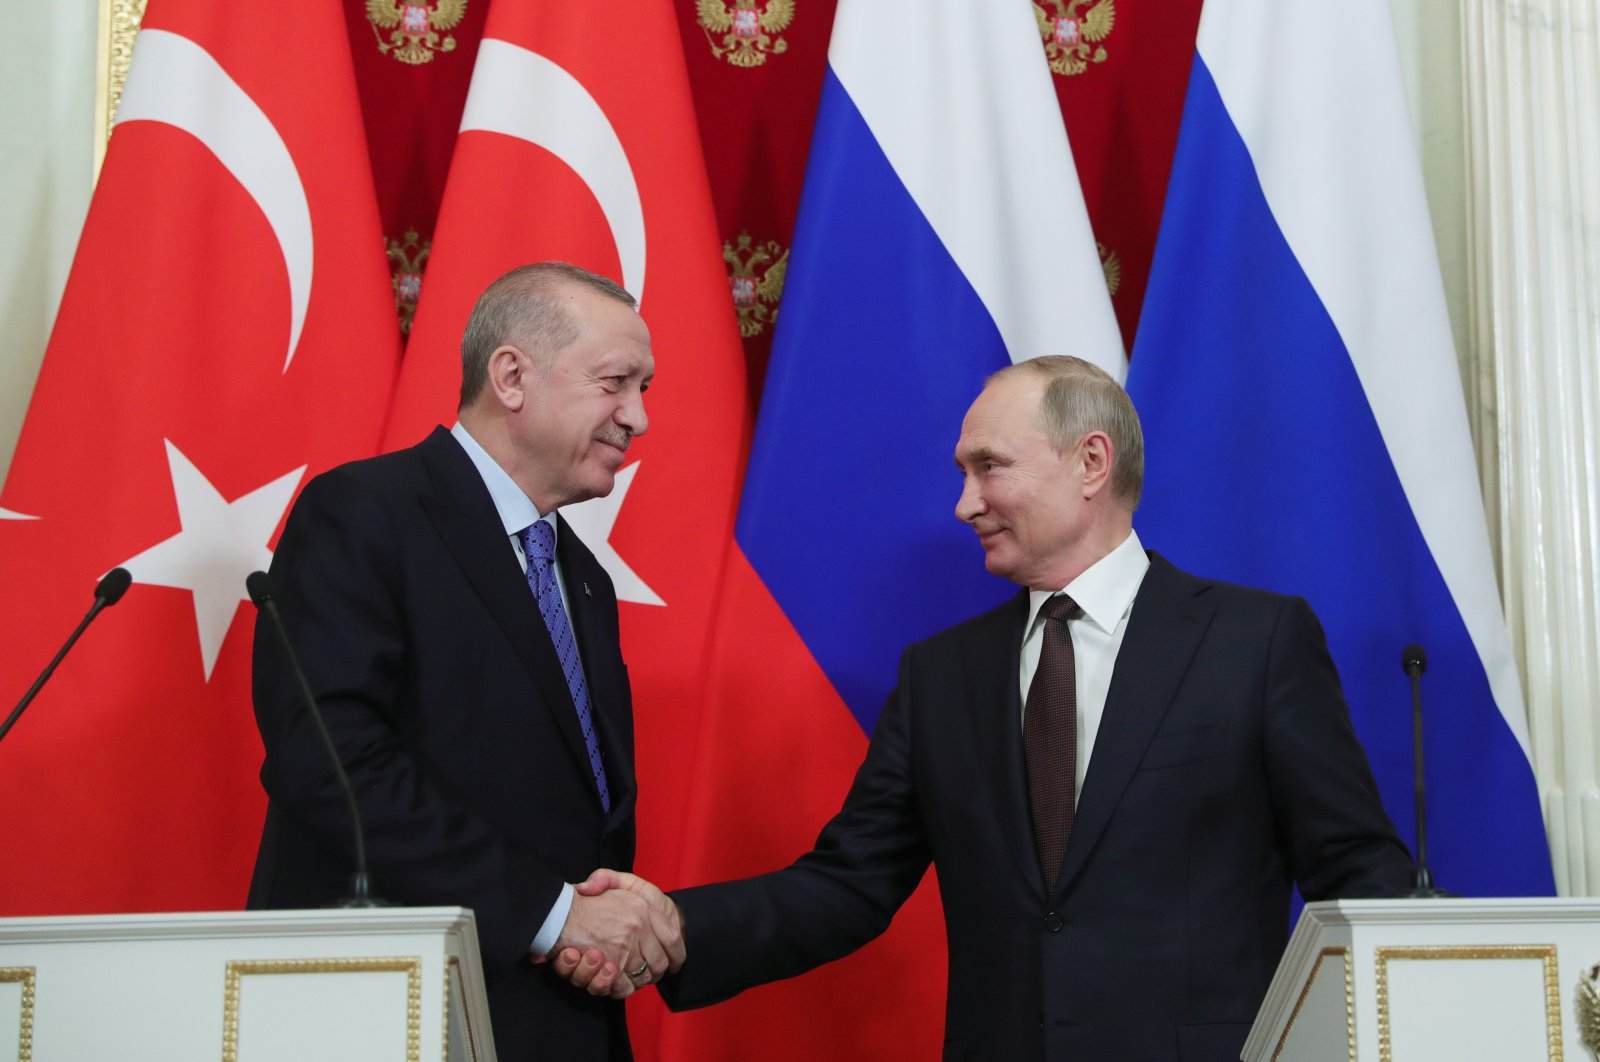 President Recep Tayyip Erdoğan and President Vladimir Putin shake hands following a meeting in Moscow on March 6, 2020 (AA Photo)